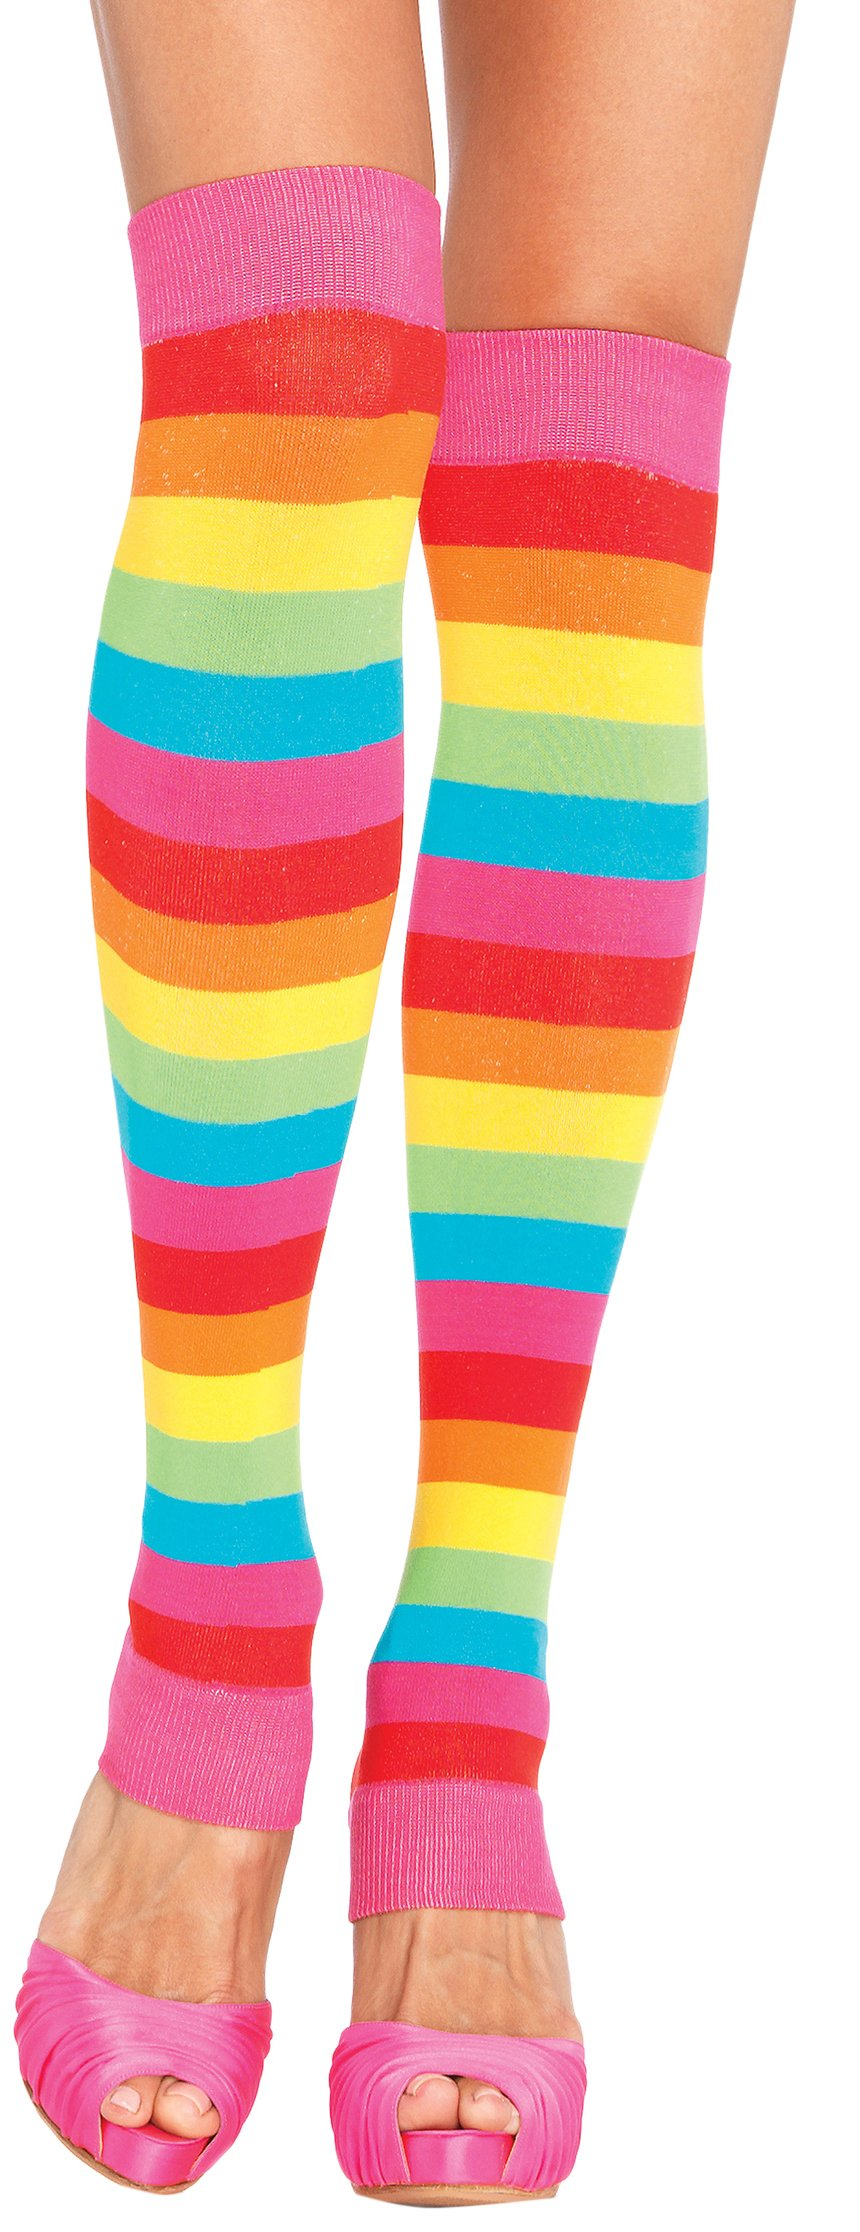 ToBeInStyle Women's Rainbow Striped Leg Warmers - Multicolor - One Size